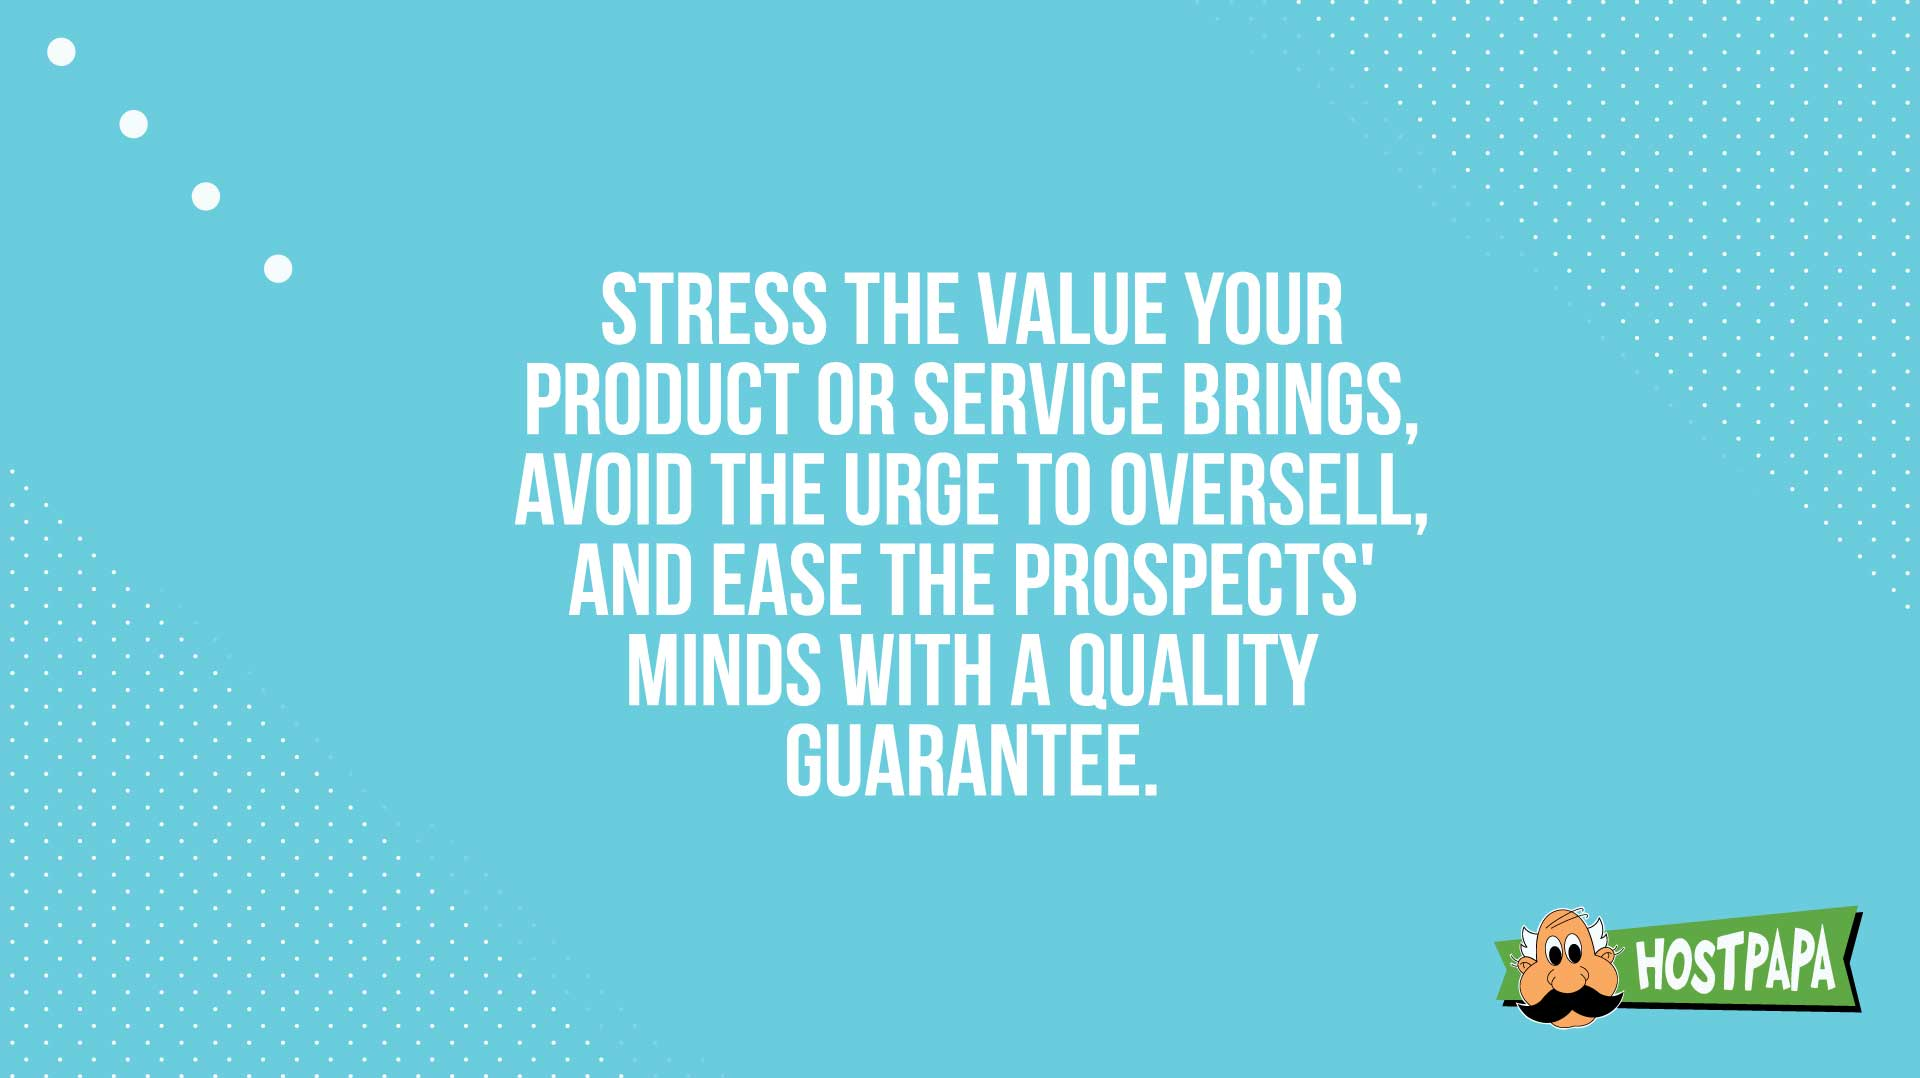 Avoid the urge to oversell, and ease the prospect's minds